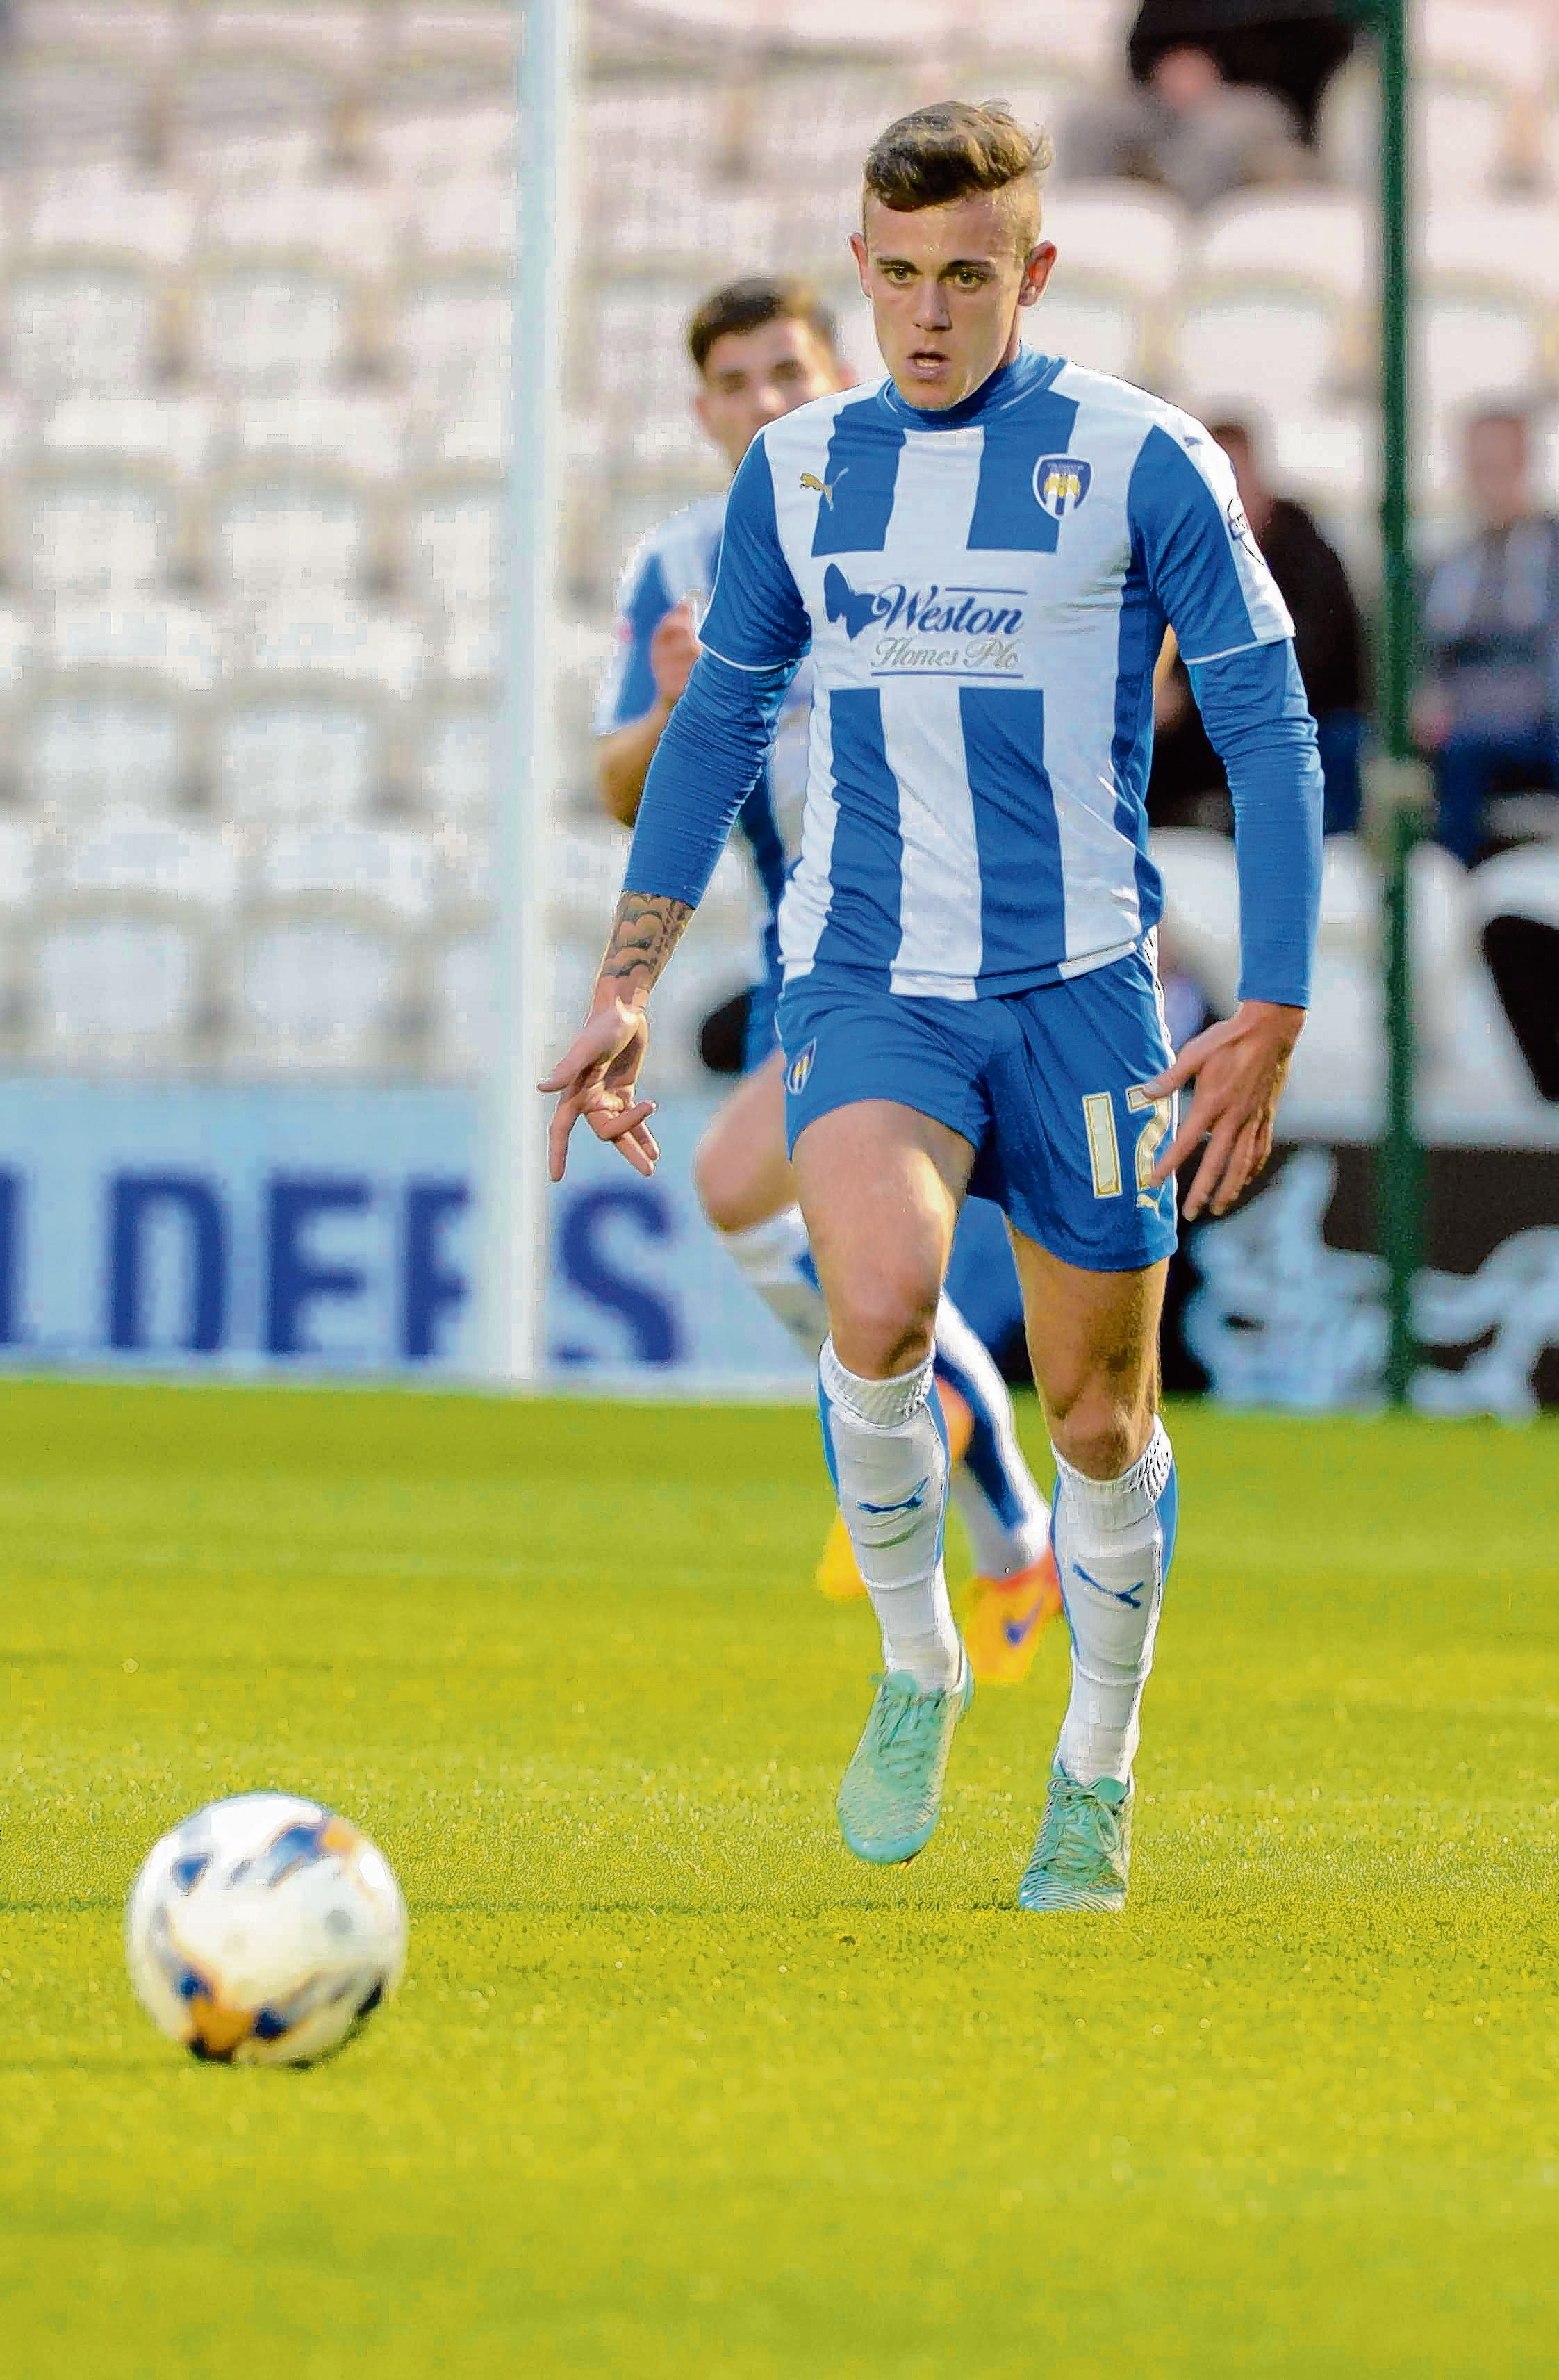 Hoping to return soon - Sammie Szmodics has not featured for Colchester United since last December because of a foot injury. Picture: STEVE BRADING (CO108873_01)